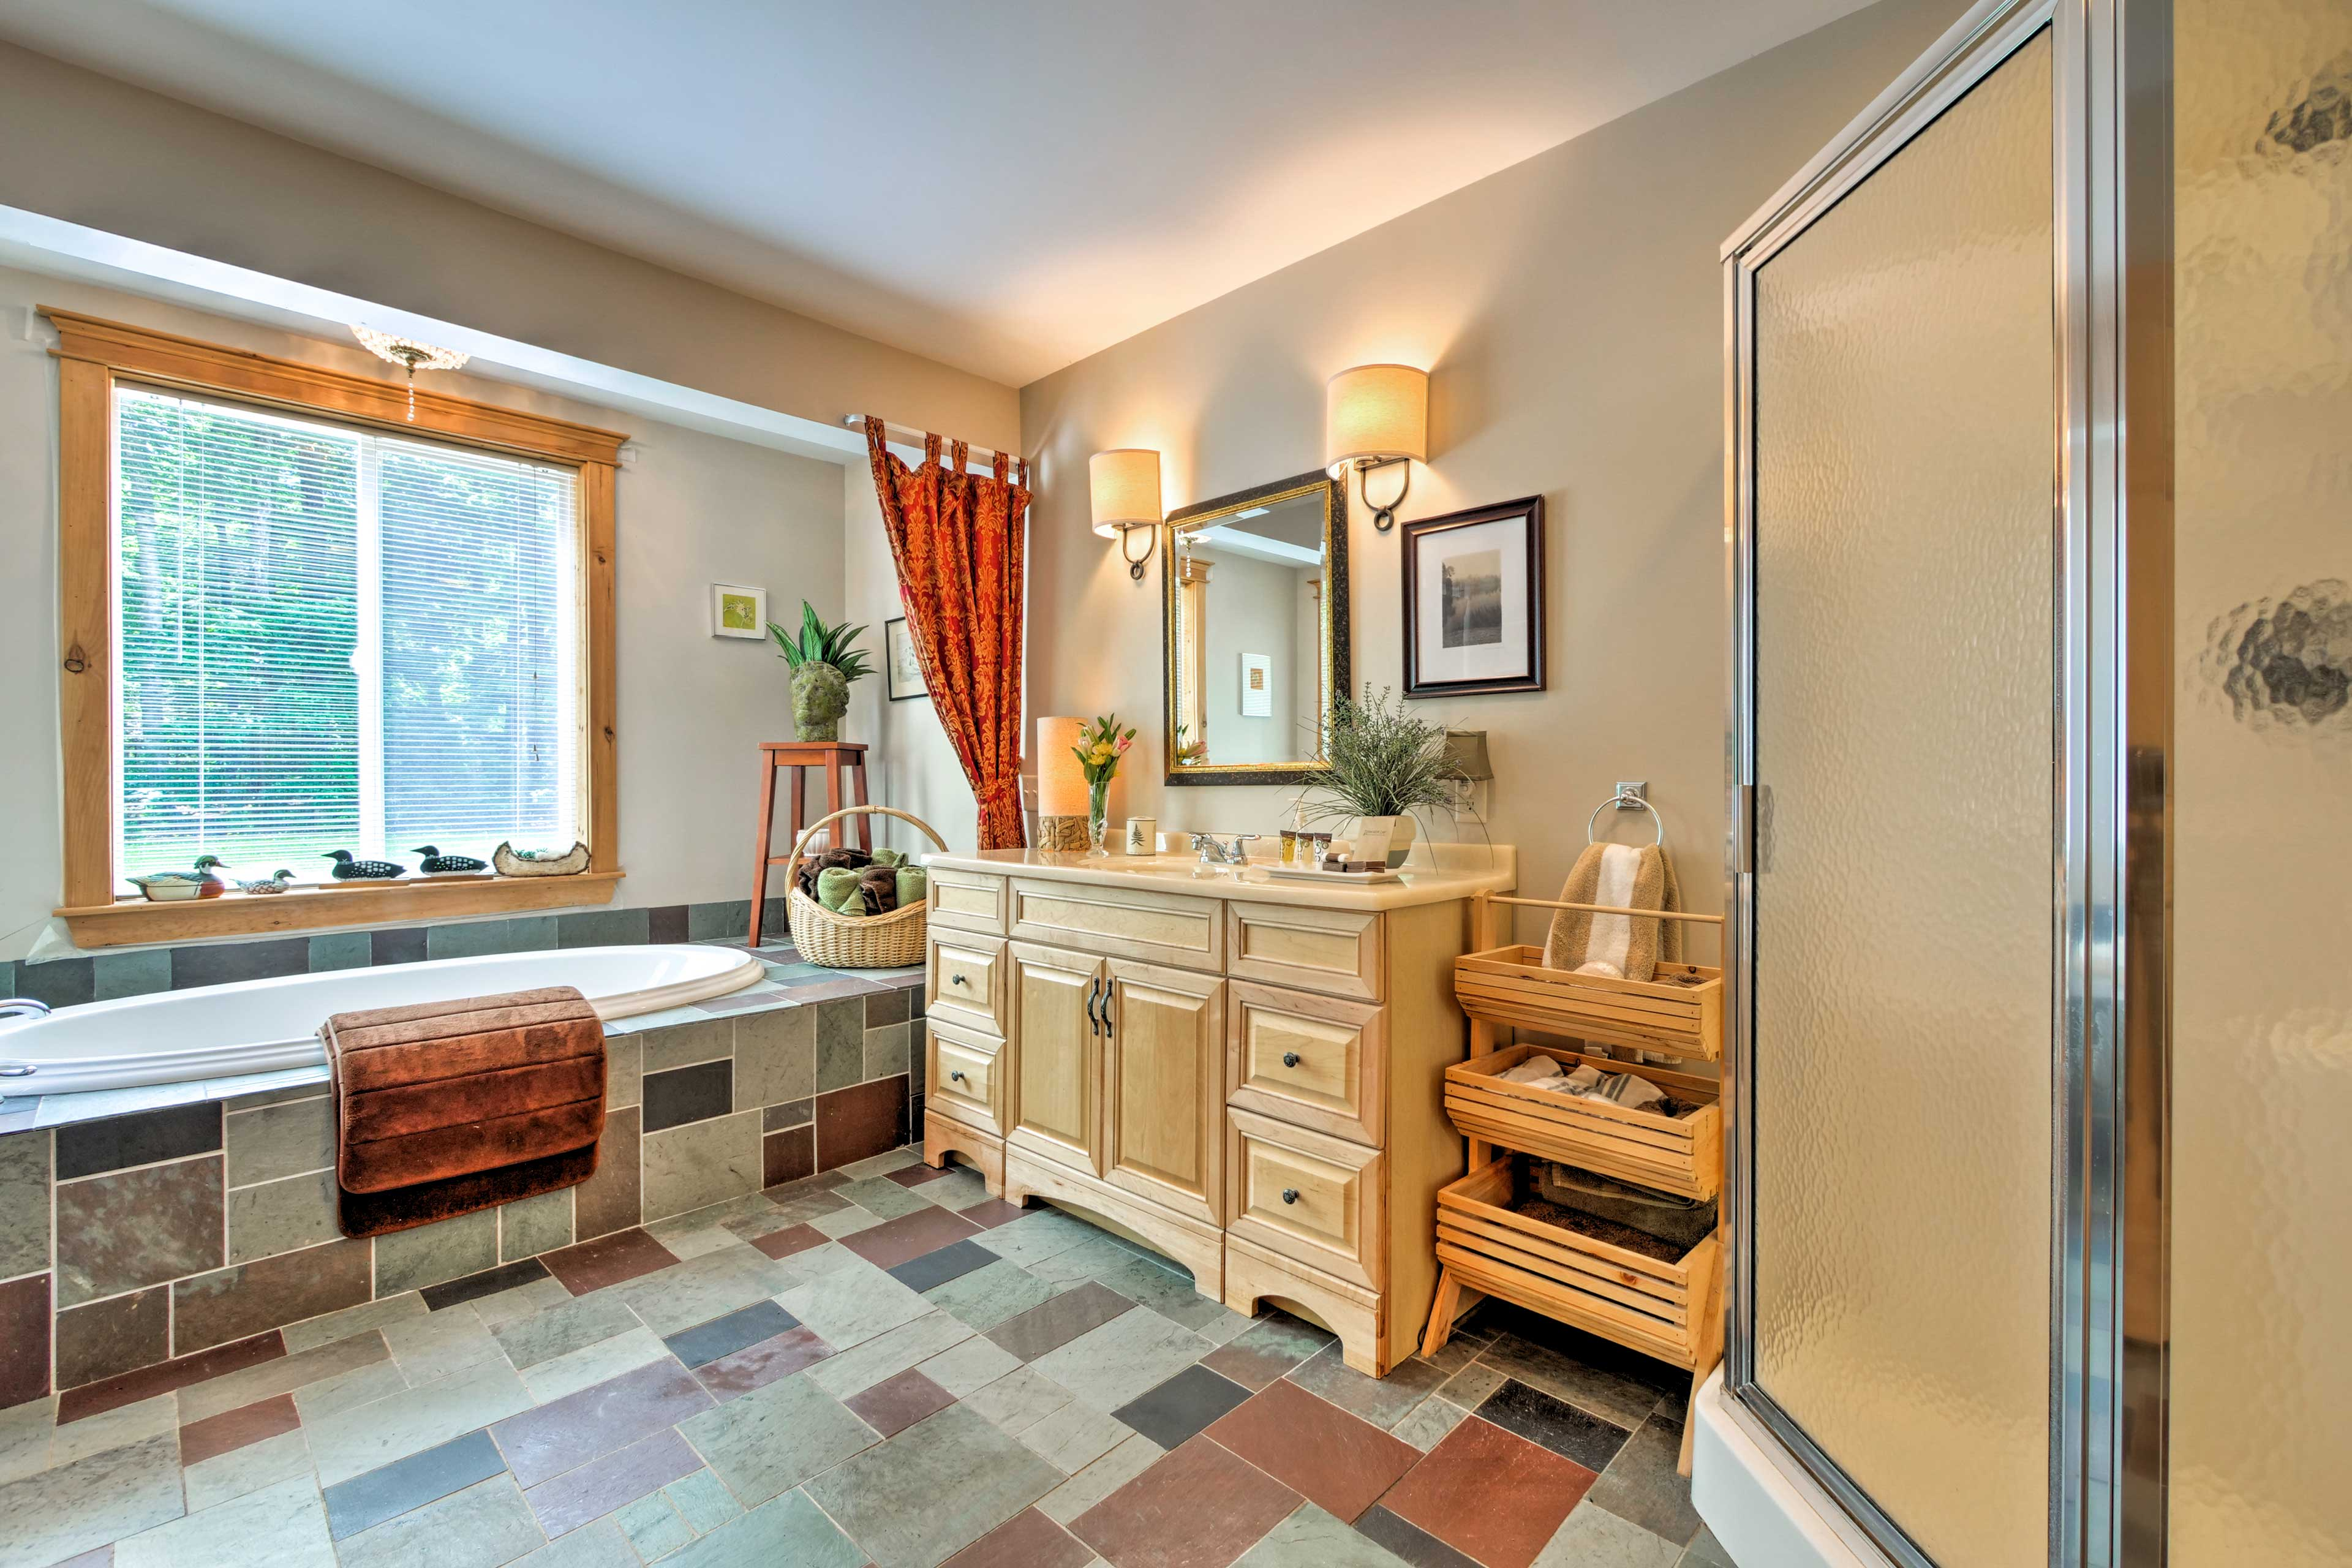 Rinse the lake water off in the glass-enclosed walk-in shower.